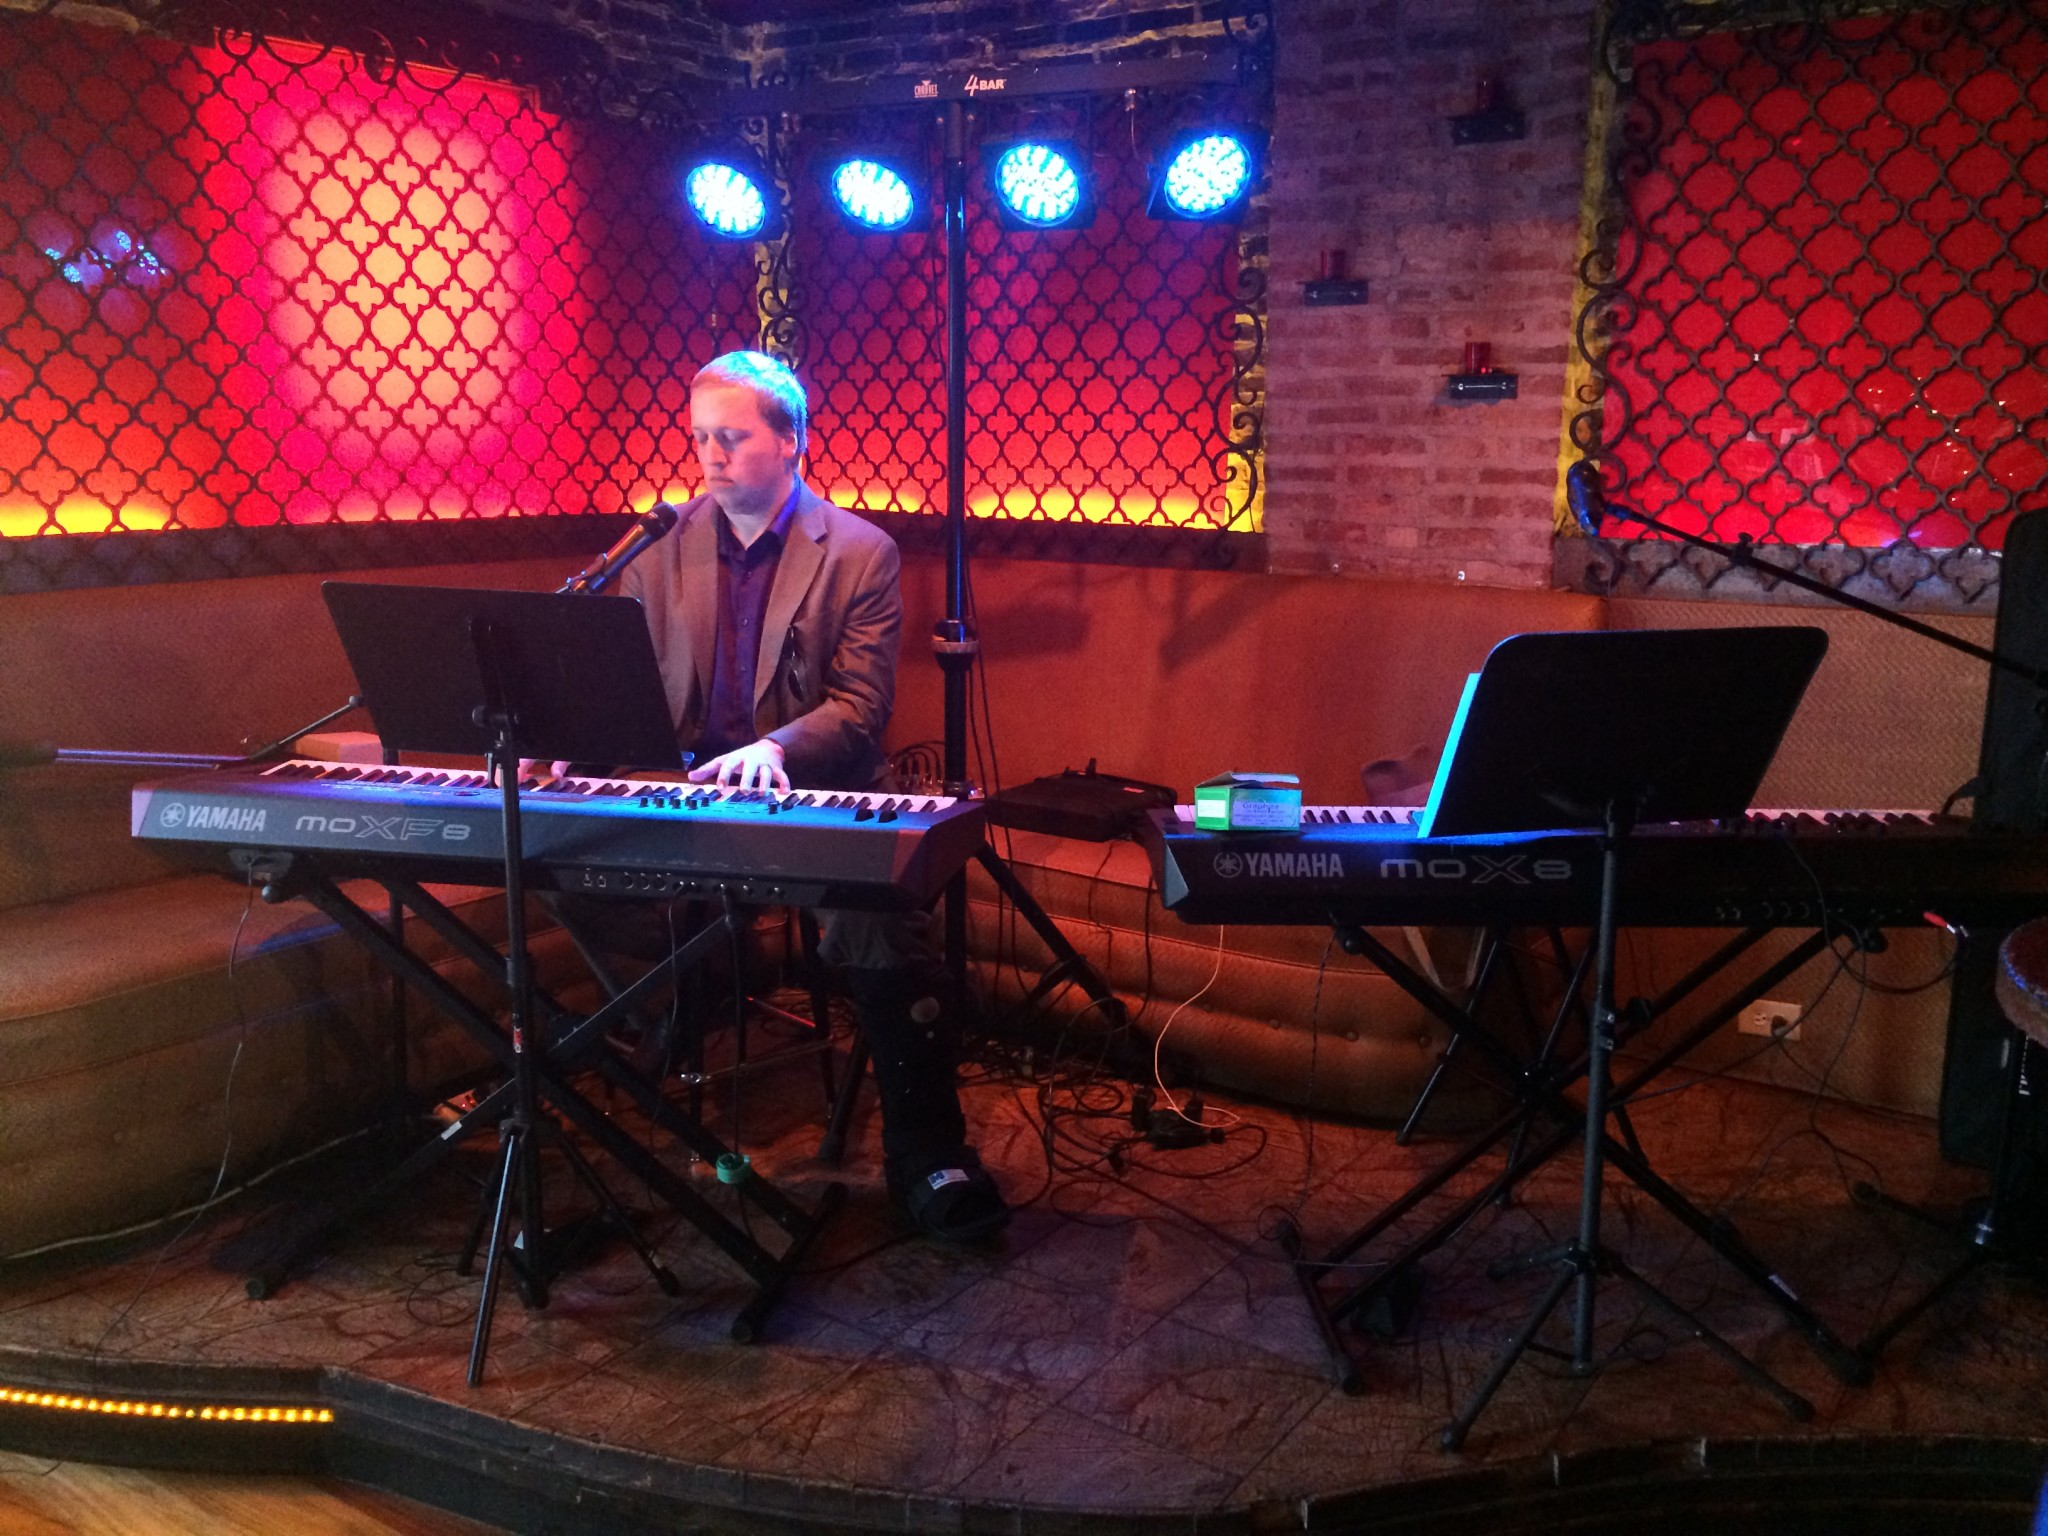 Potter's Place, Naperville hosts Dueling Pianos